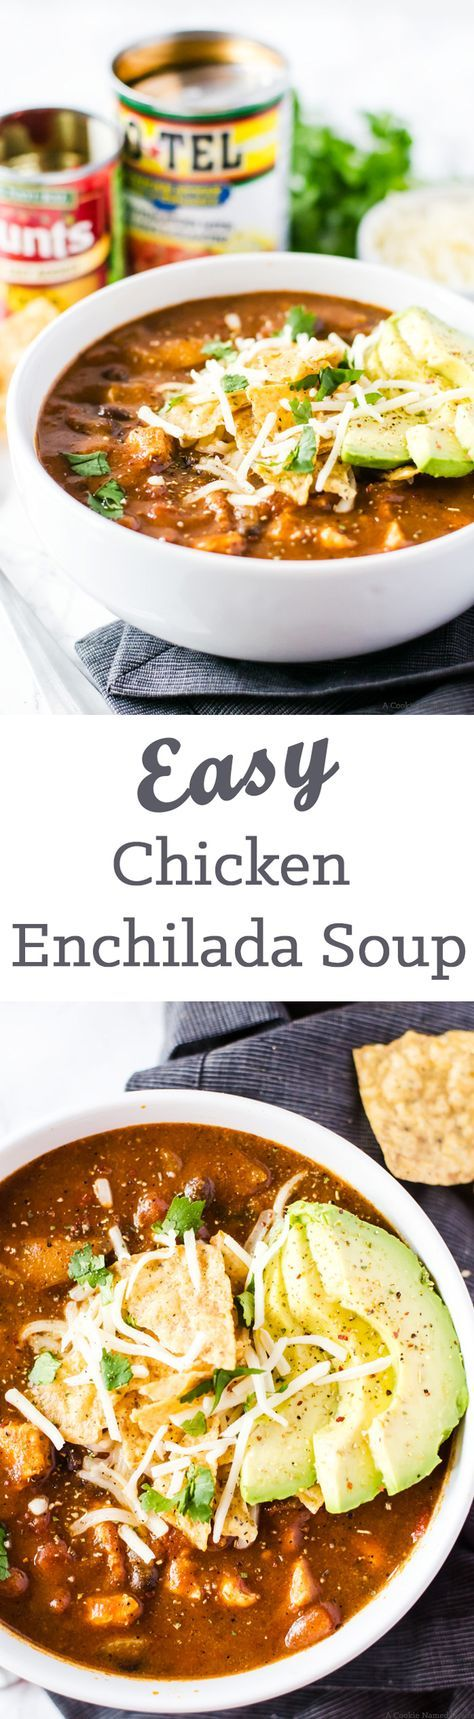 Easy Chicken Enchilada Soup - No one will believe this soup was finished in under 30 minutes! It is rich, full of flavor, and bound to be your new favorite weeknight dinner recipe.